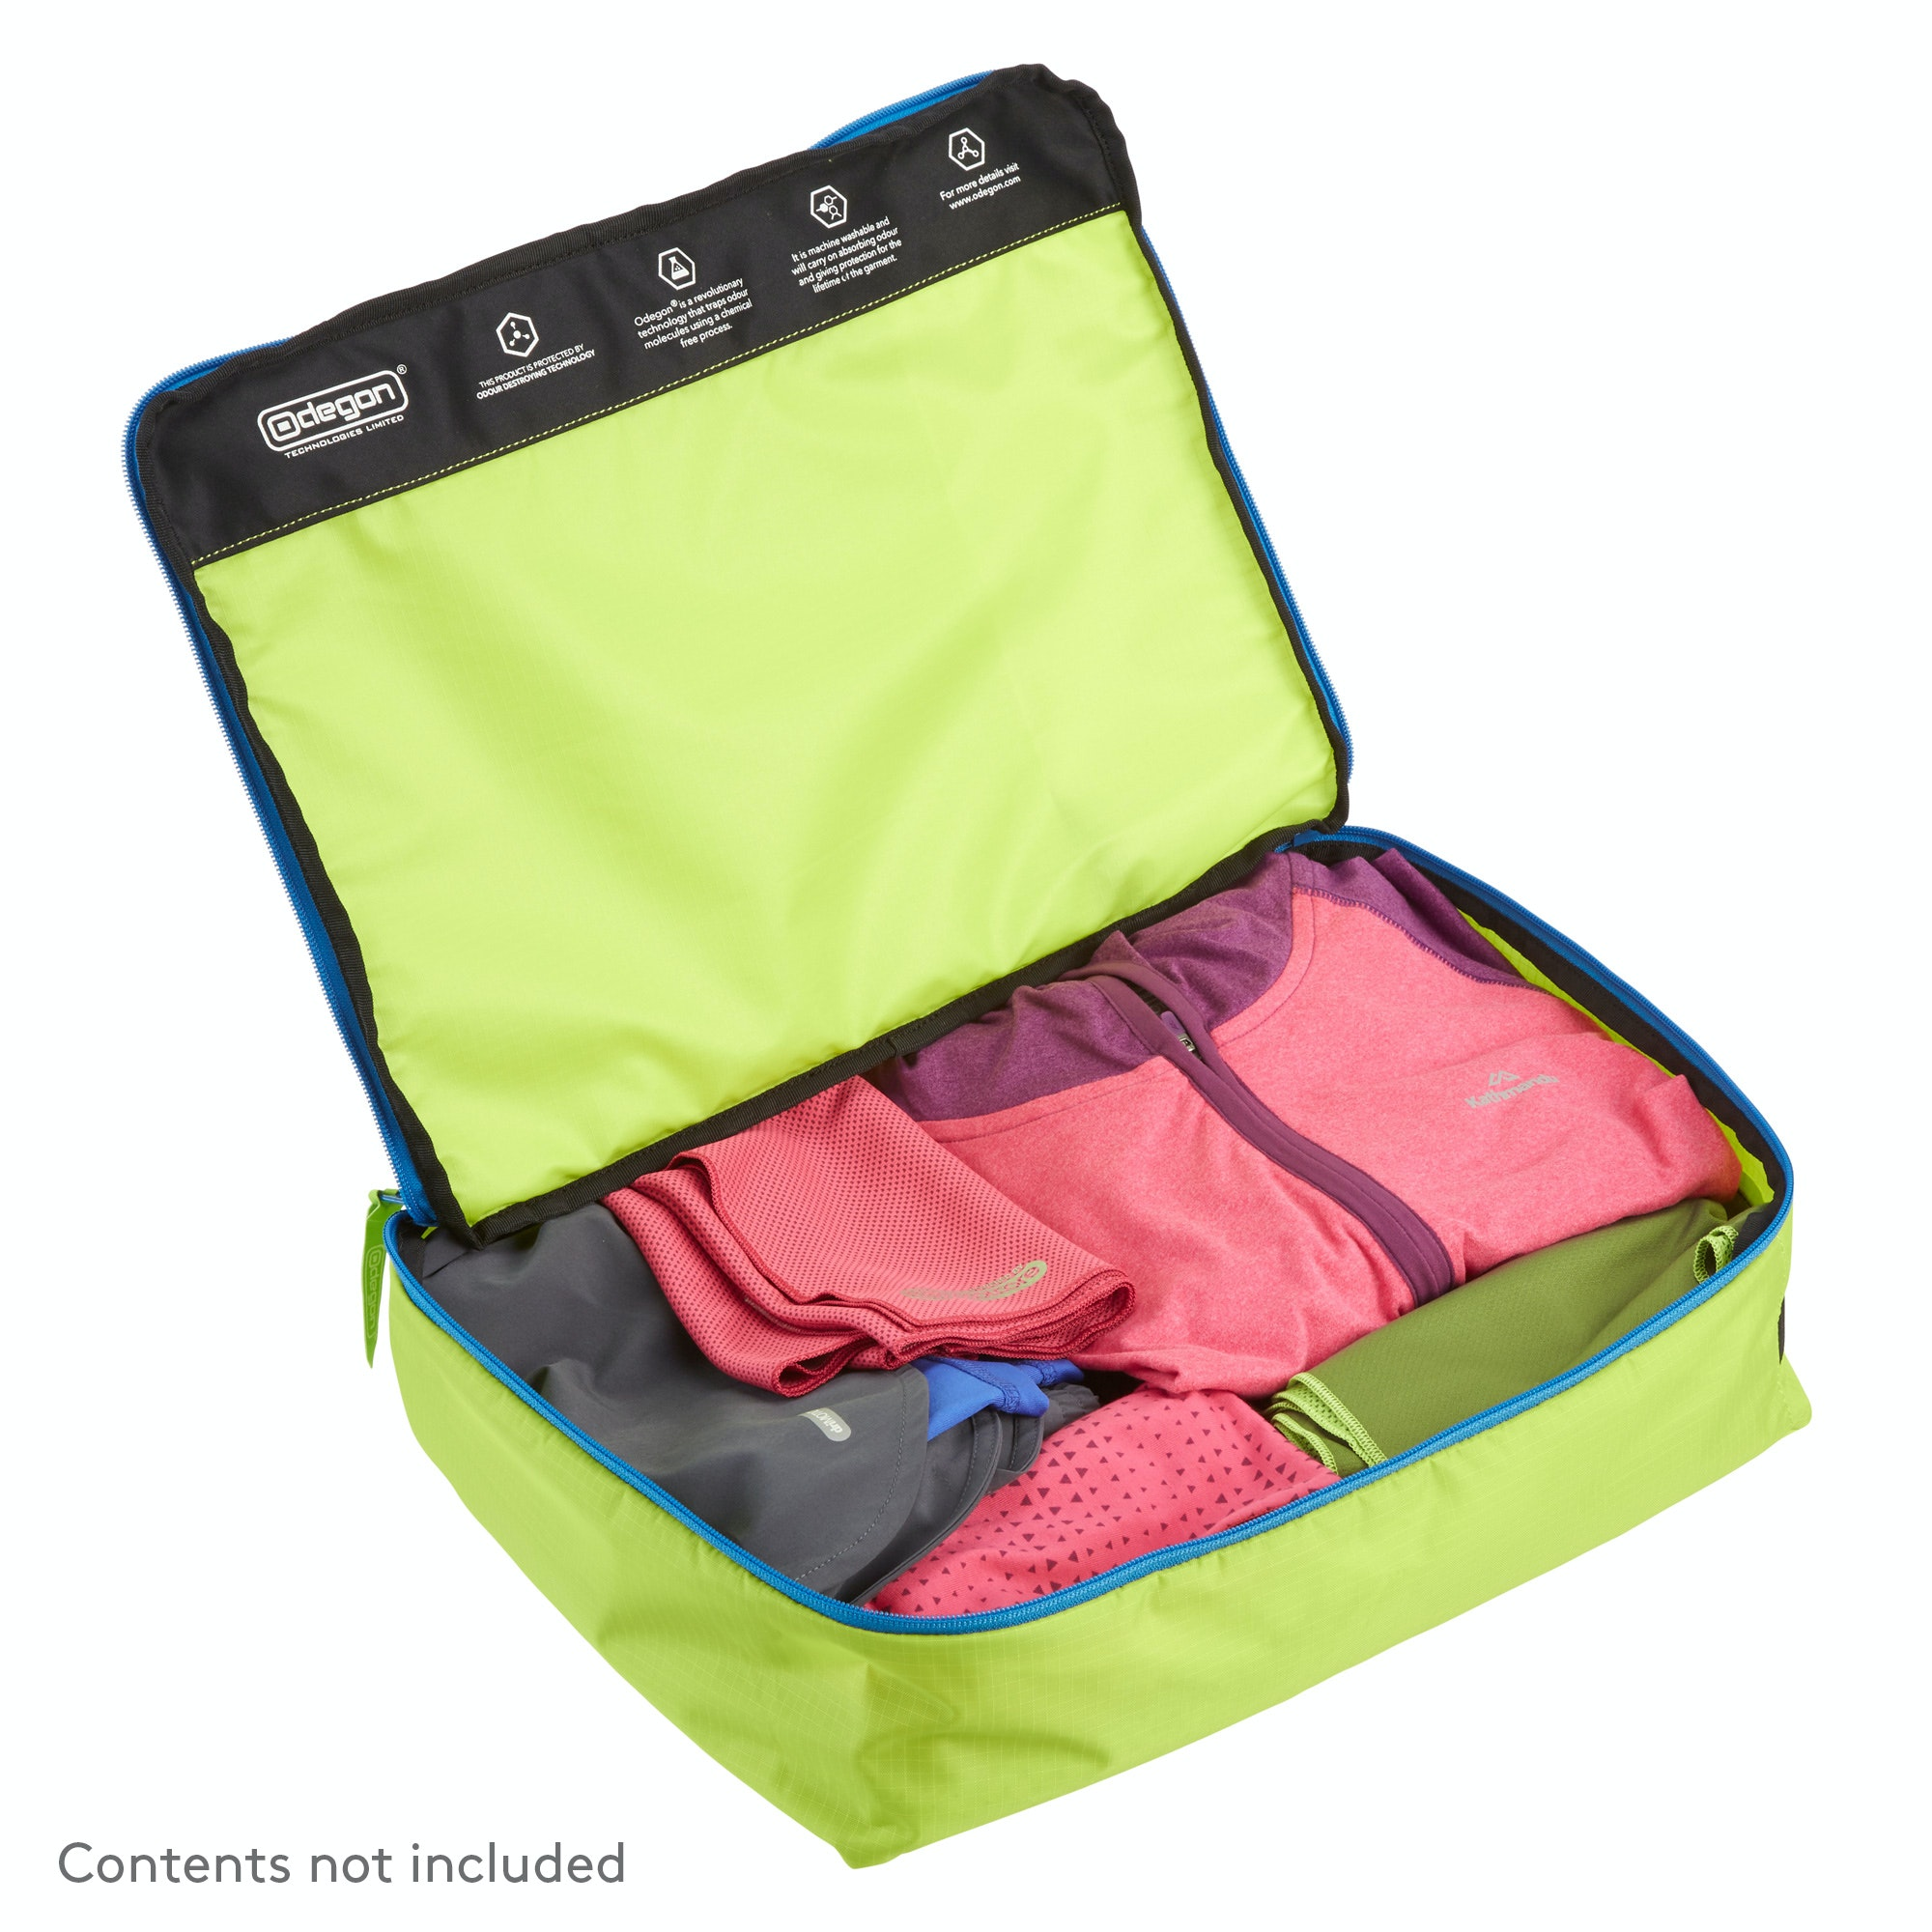 Packing Cells Details About New Kathmandu Anti Odour Clothing Storage Cell Gym Sports Gear Travel Bag